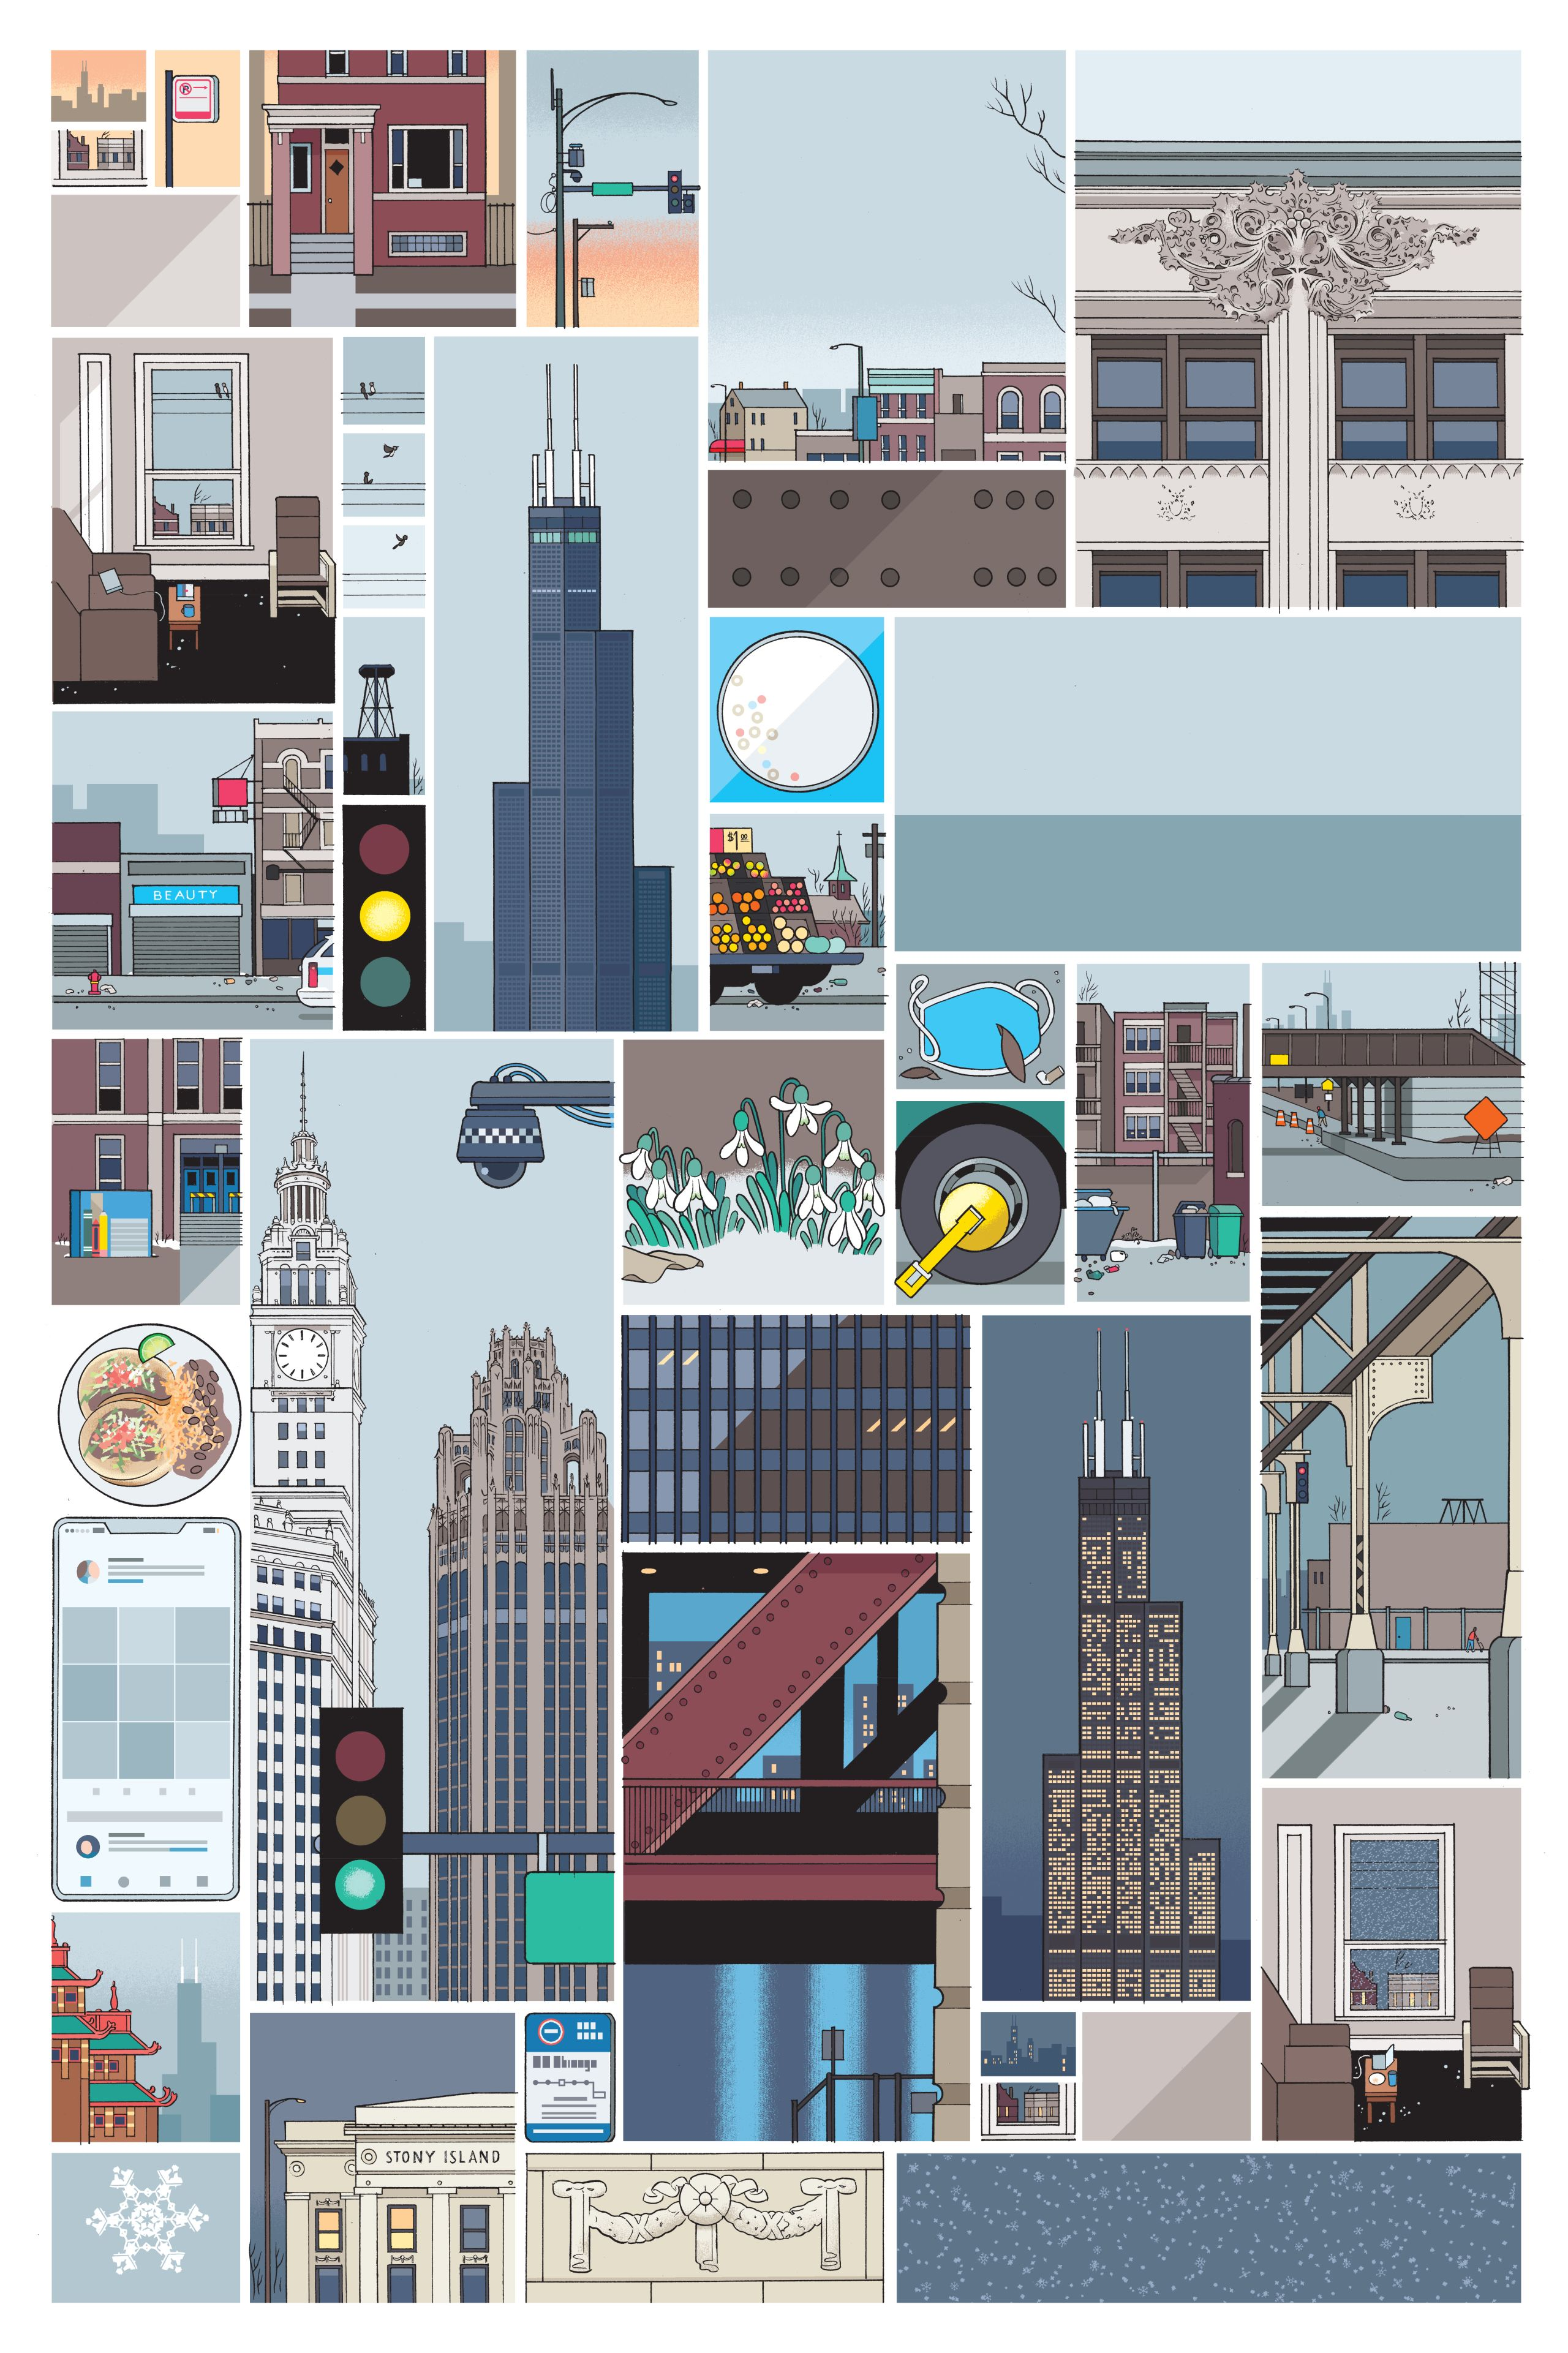 A drawn grid that shows various scenes of the city of Chicago - skyscrapers, trash-filled streets, scenes underneath the elevated train, stoplights, fronts of chicago houses, insides of apartments, etc.